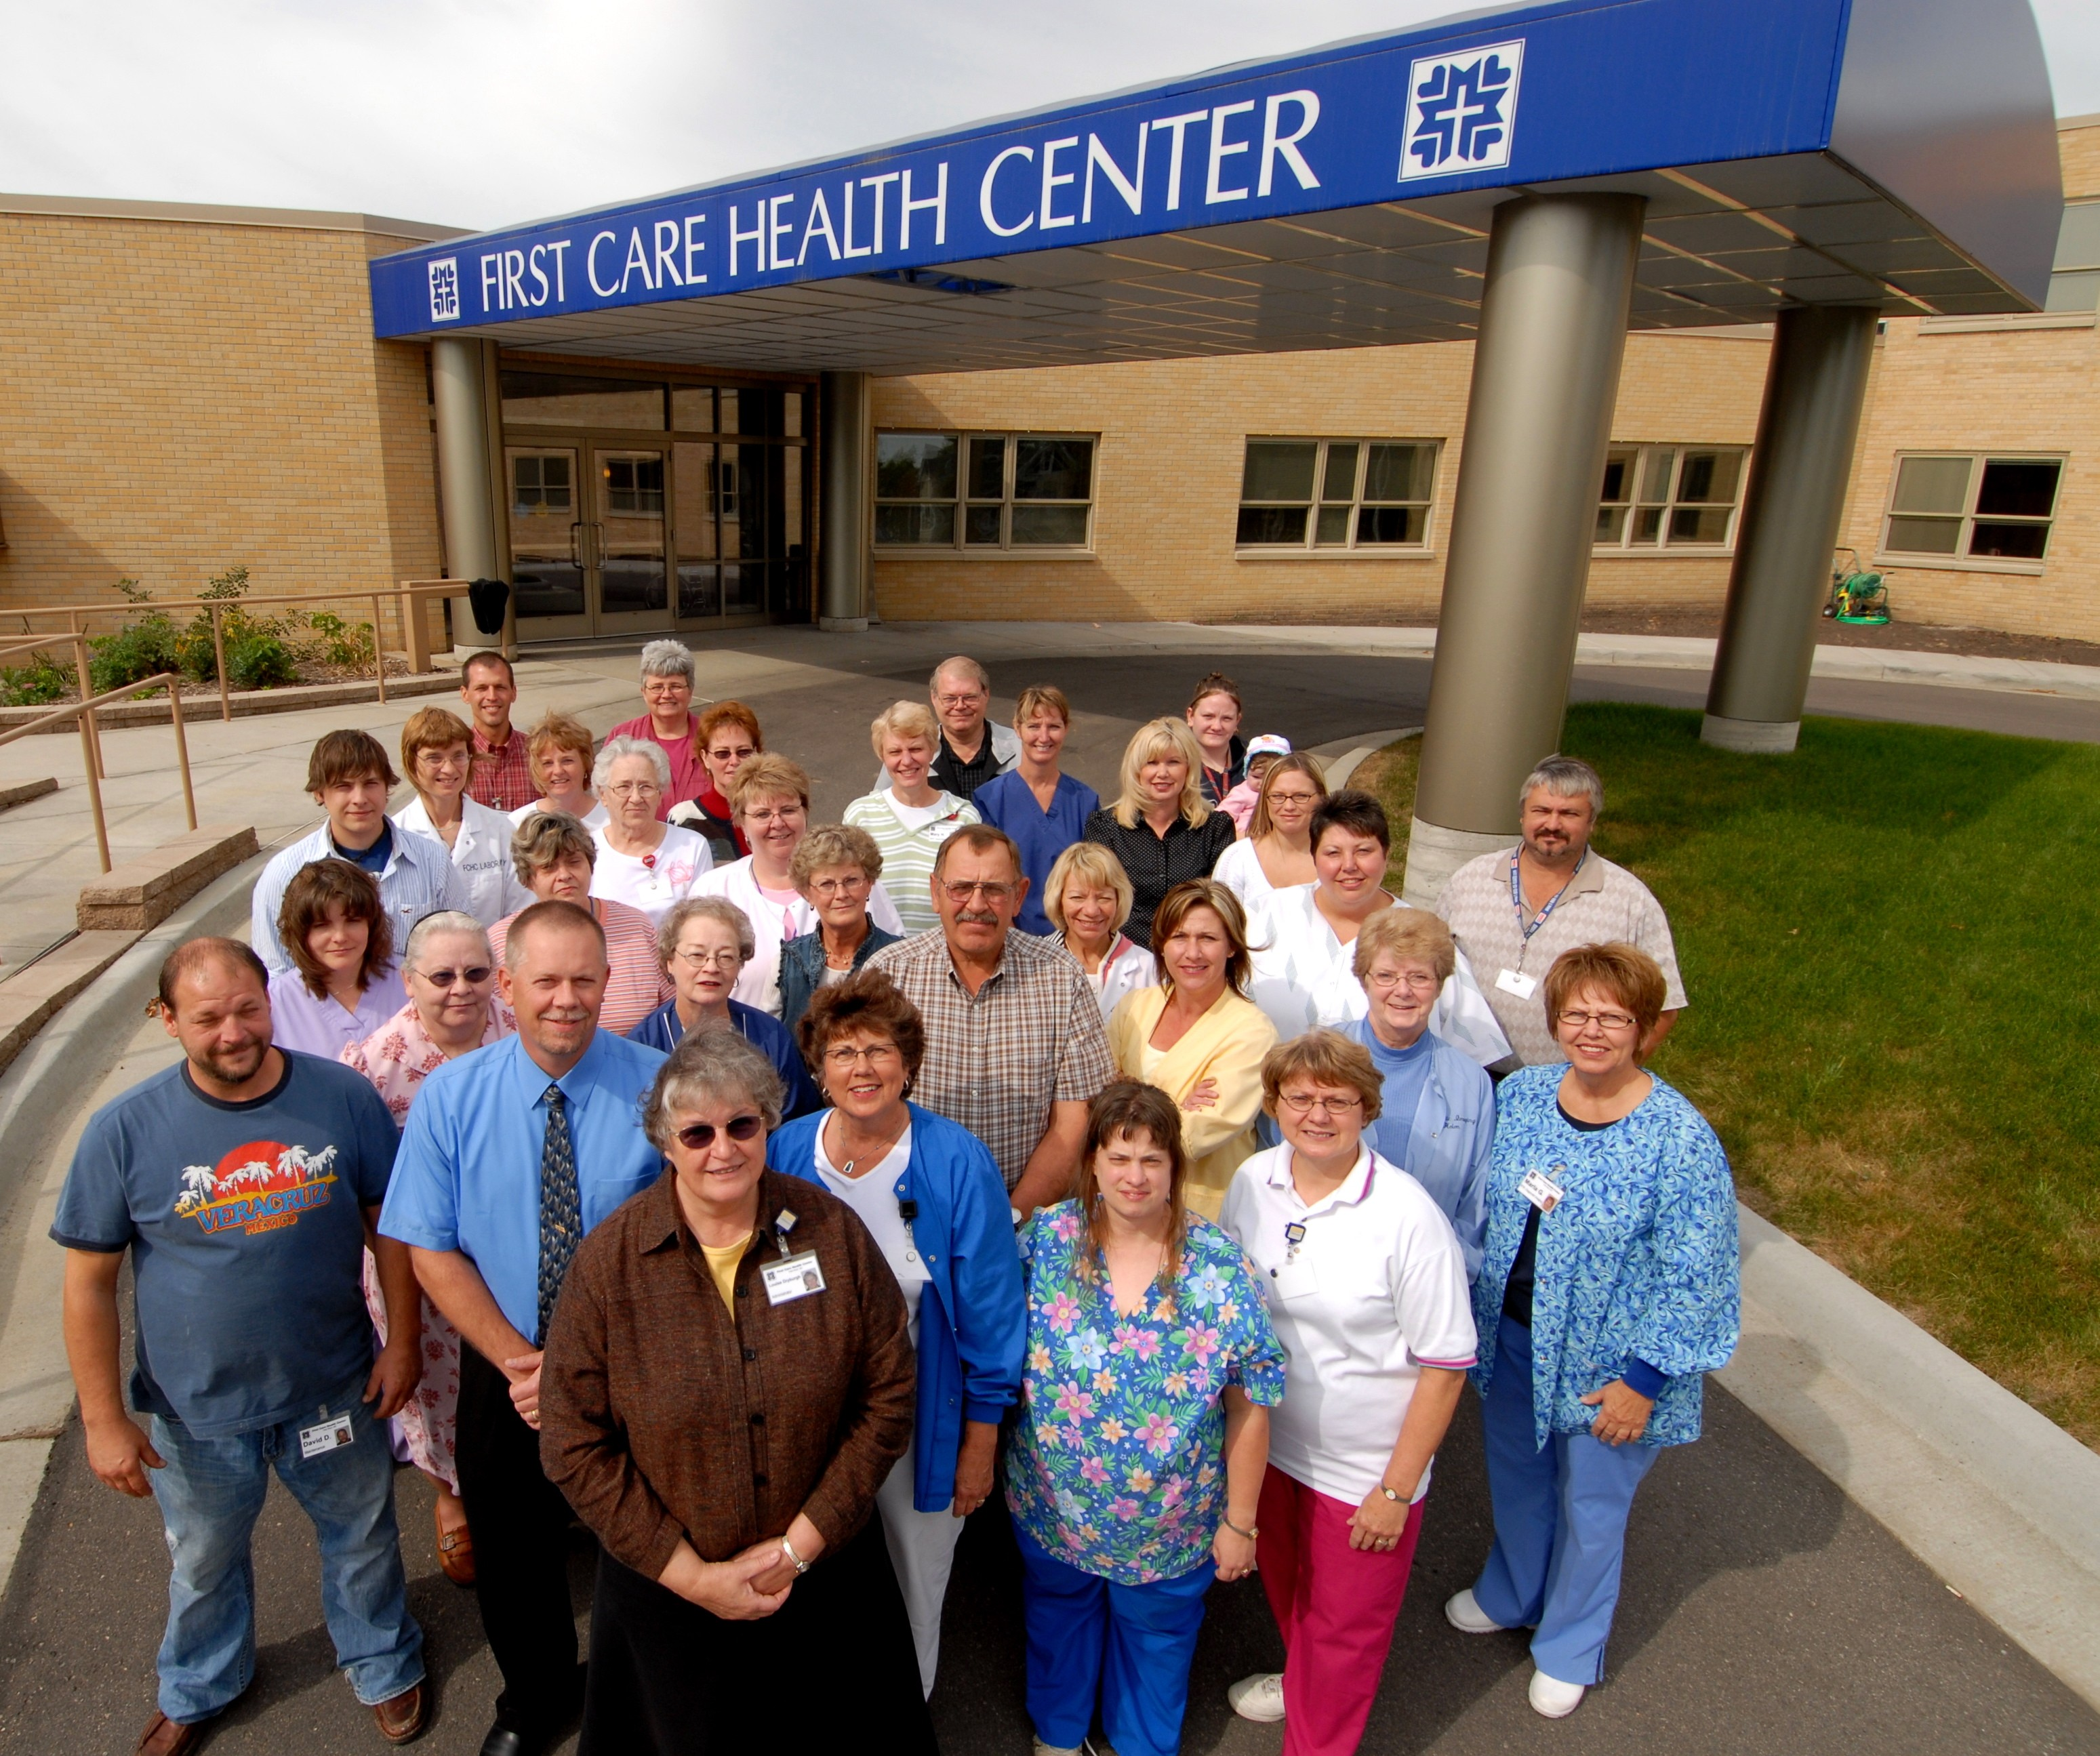 First Care Health Center - Health Care - City of Park River